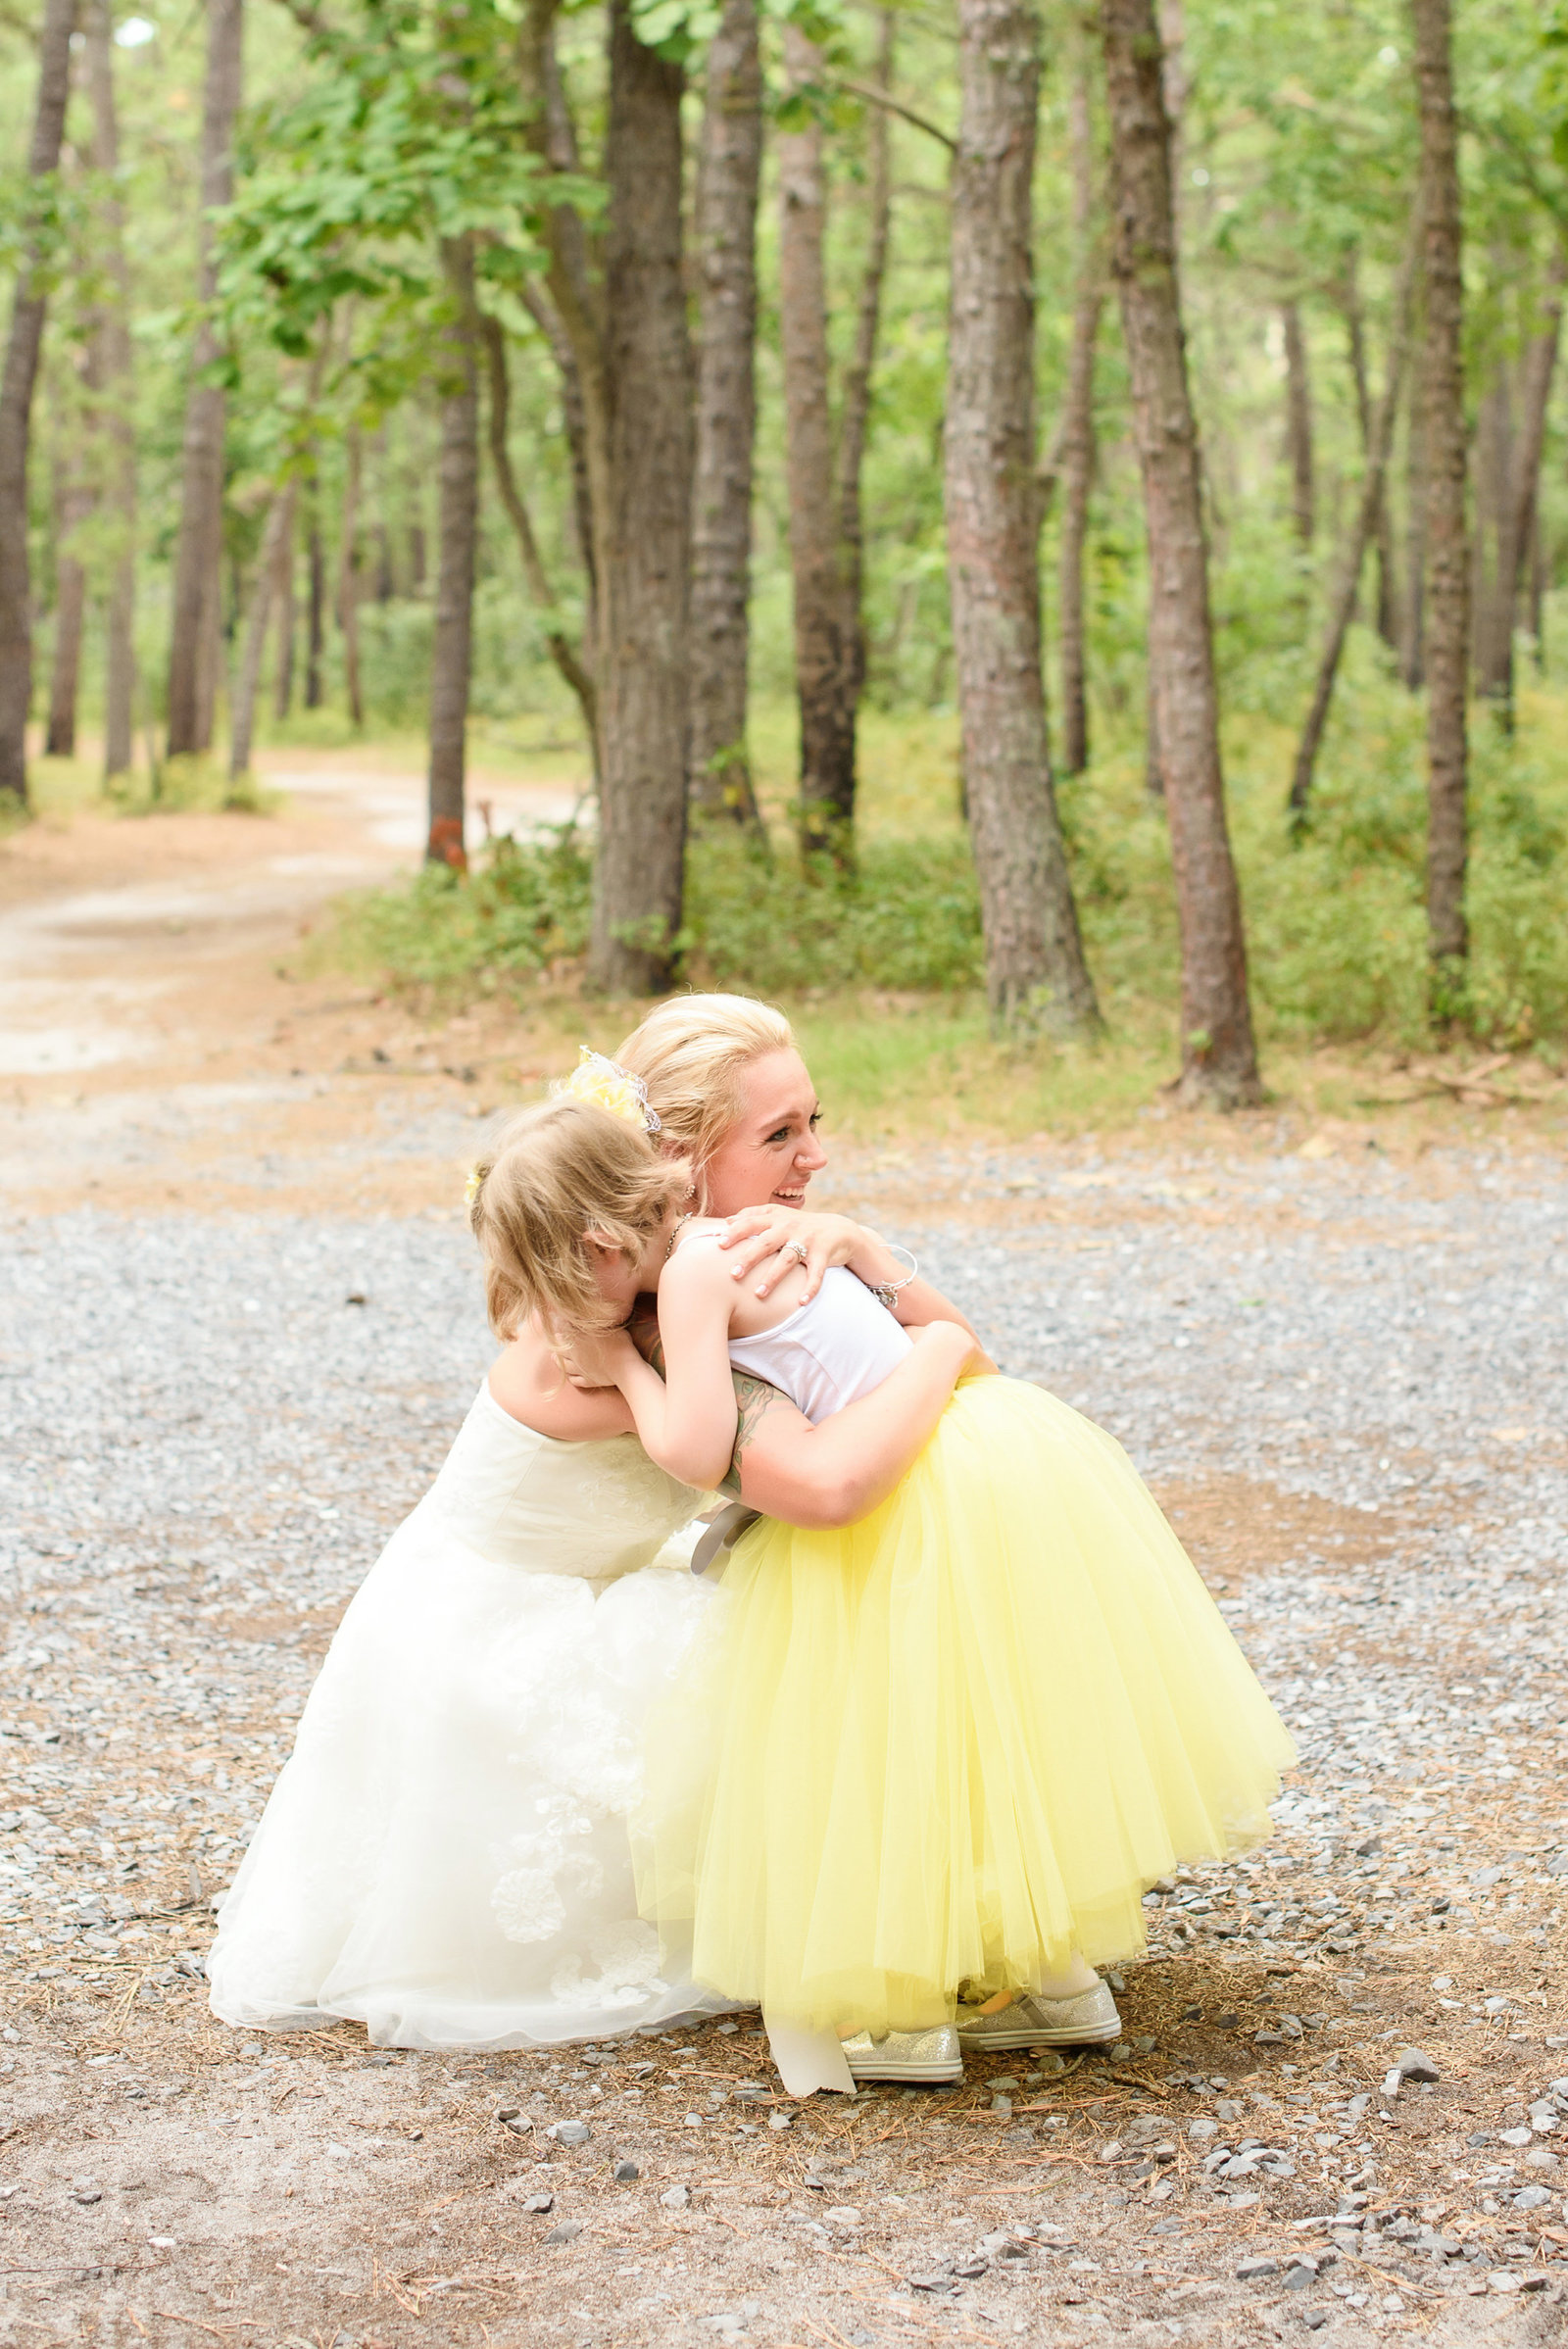 Sam&Zig_Whimsical_NJ_Wedding-138